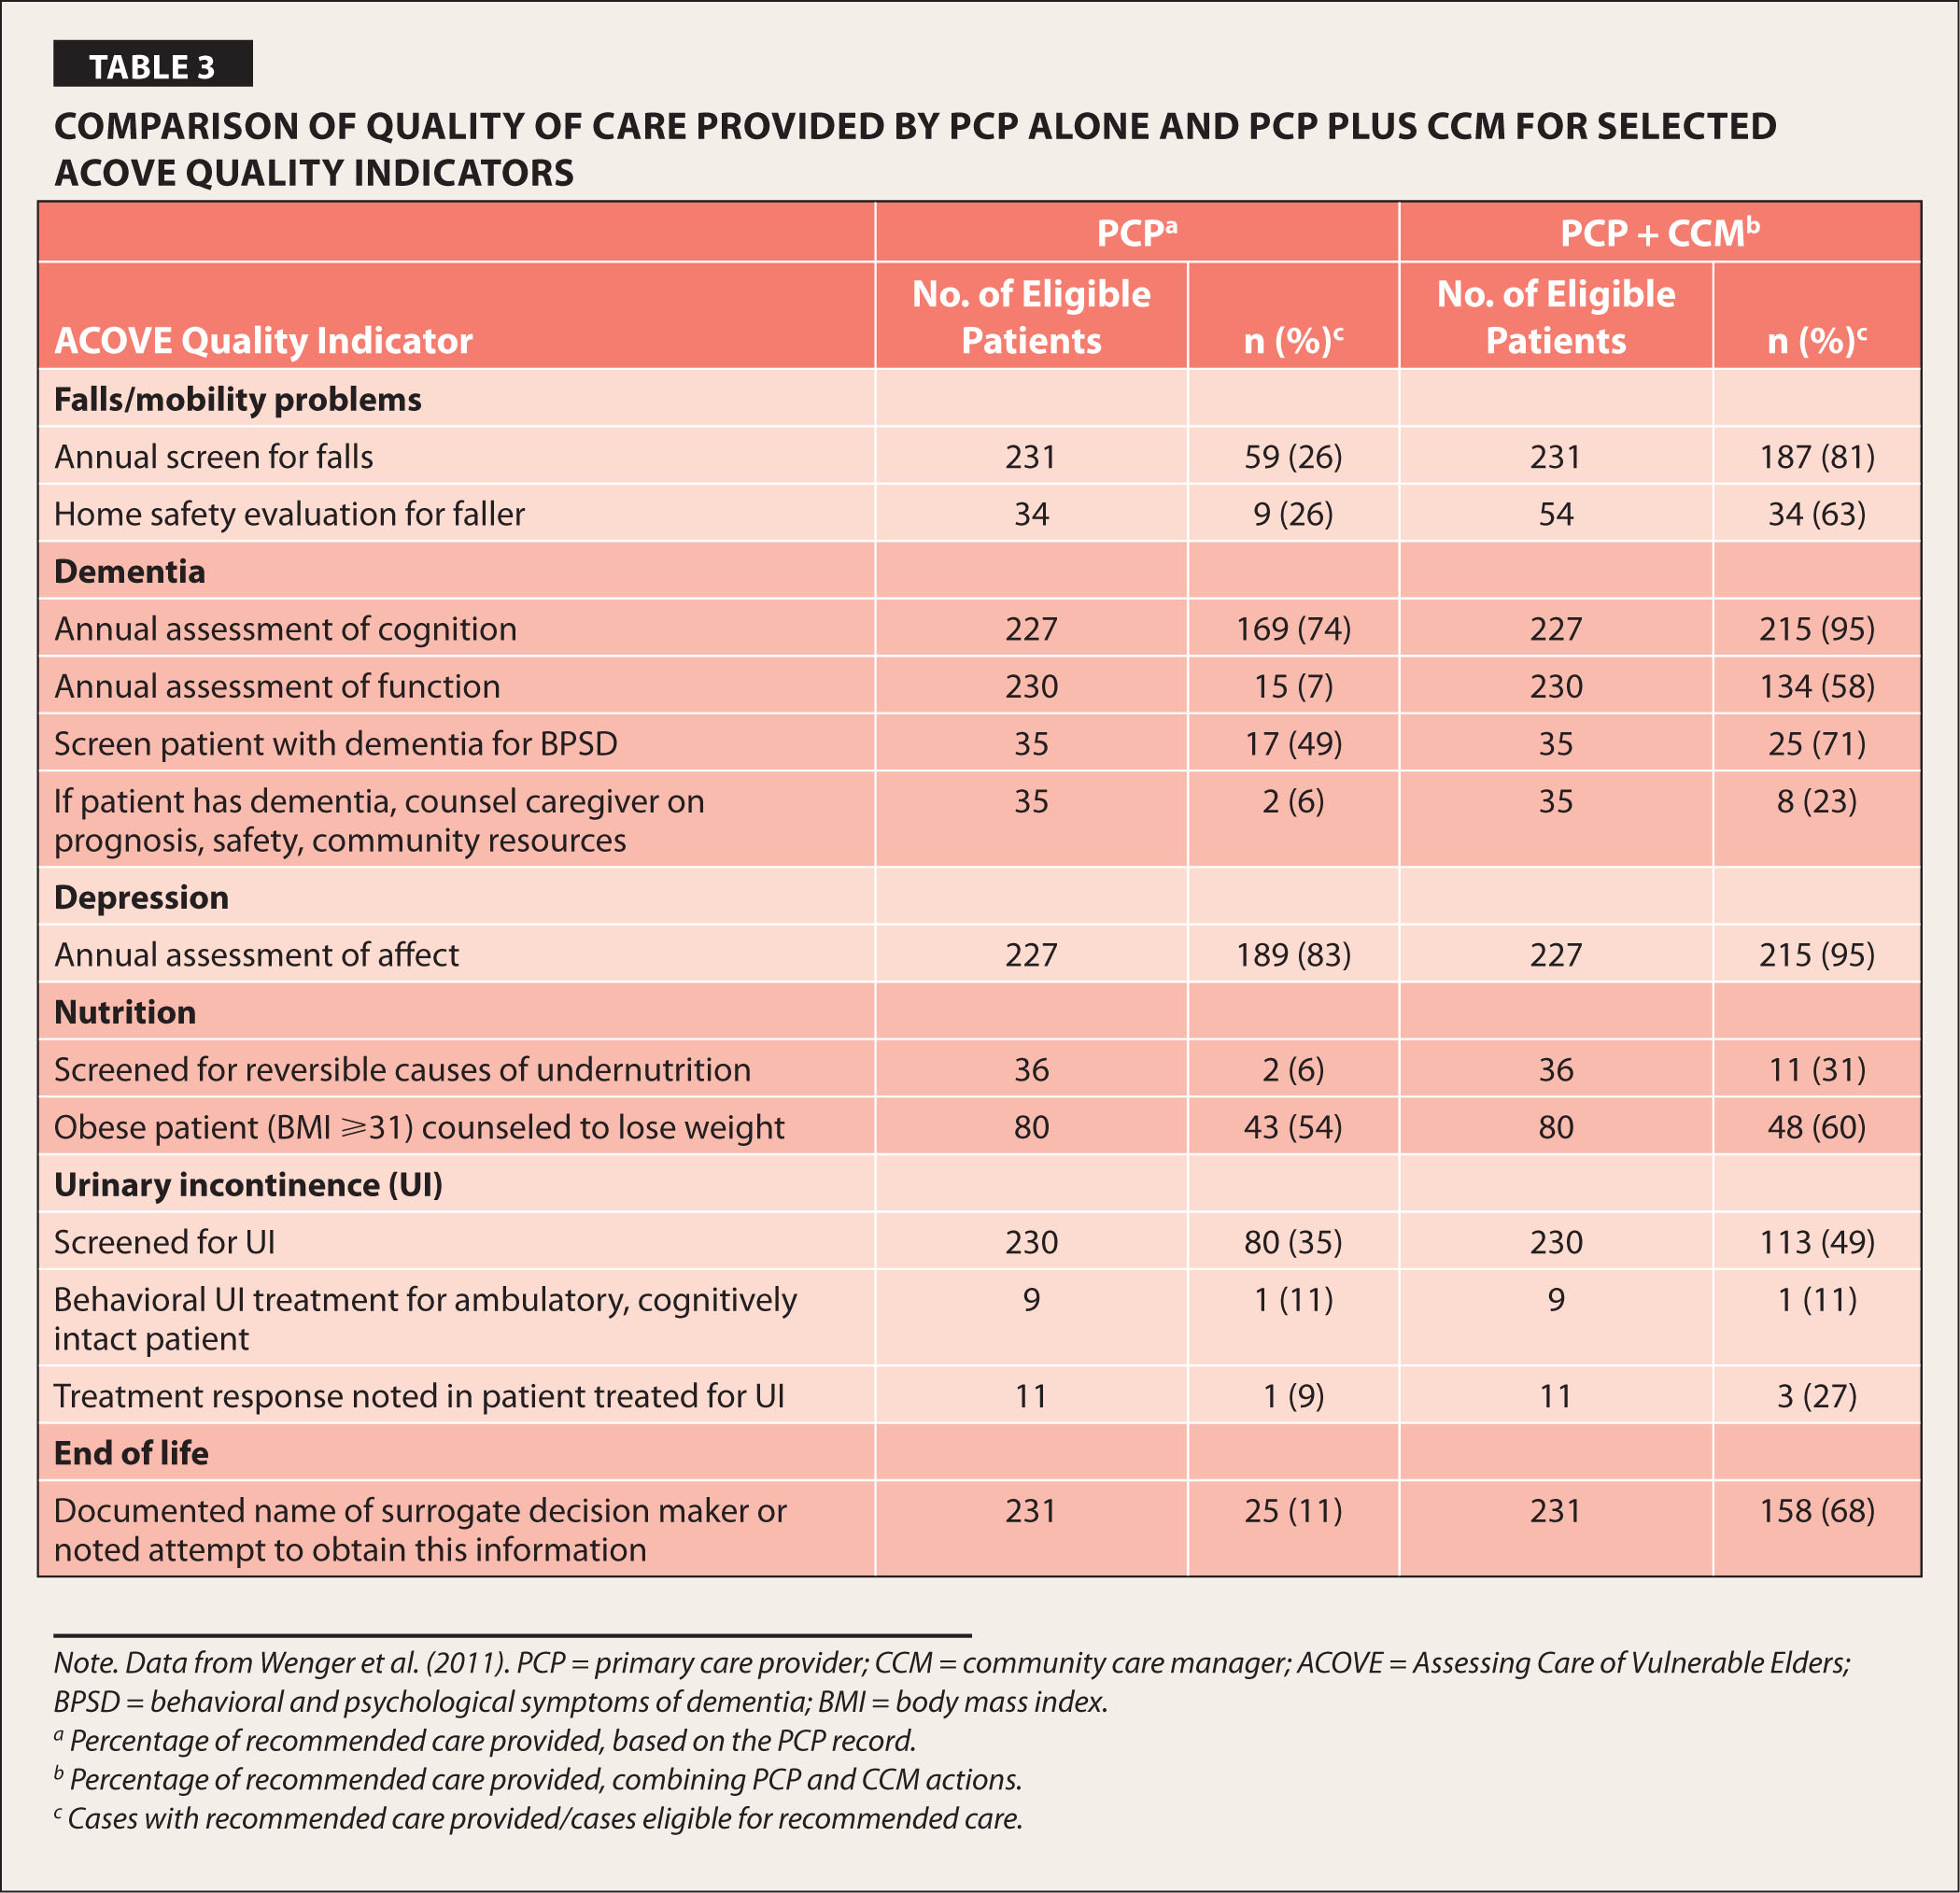 Nurse Care Manager Contribution to Quality of Care in a Dual